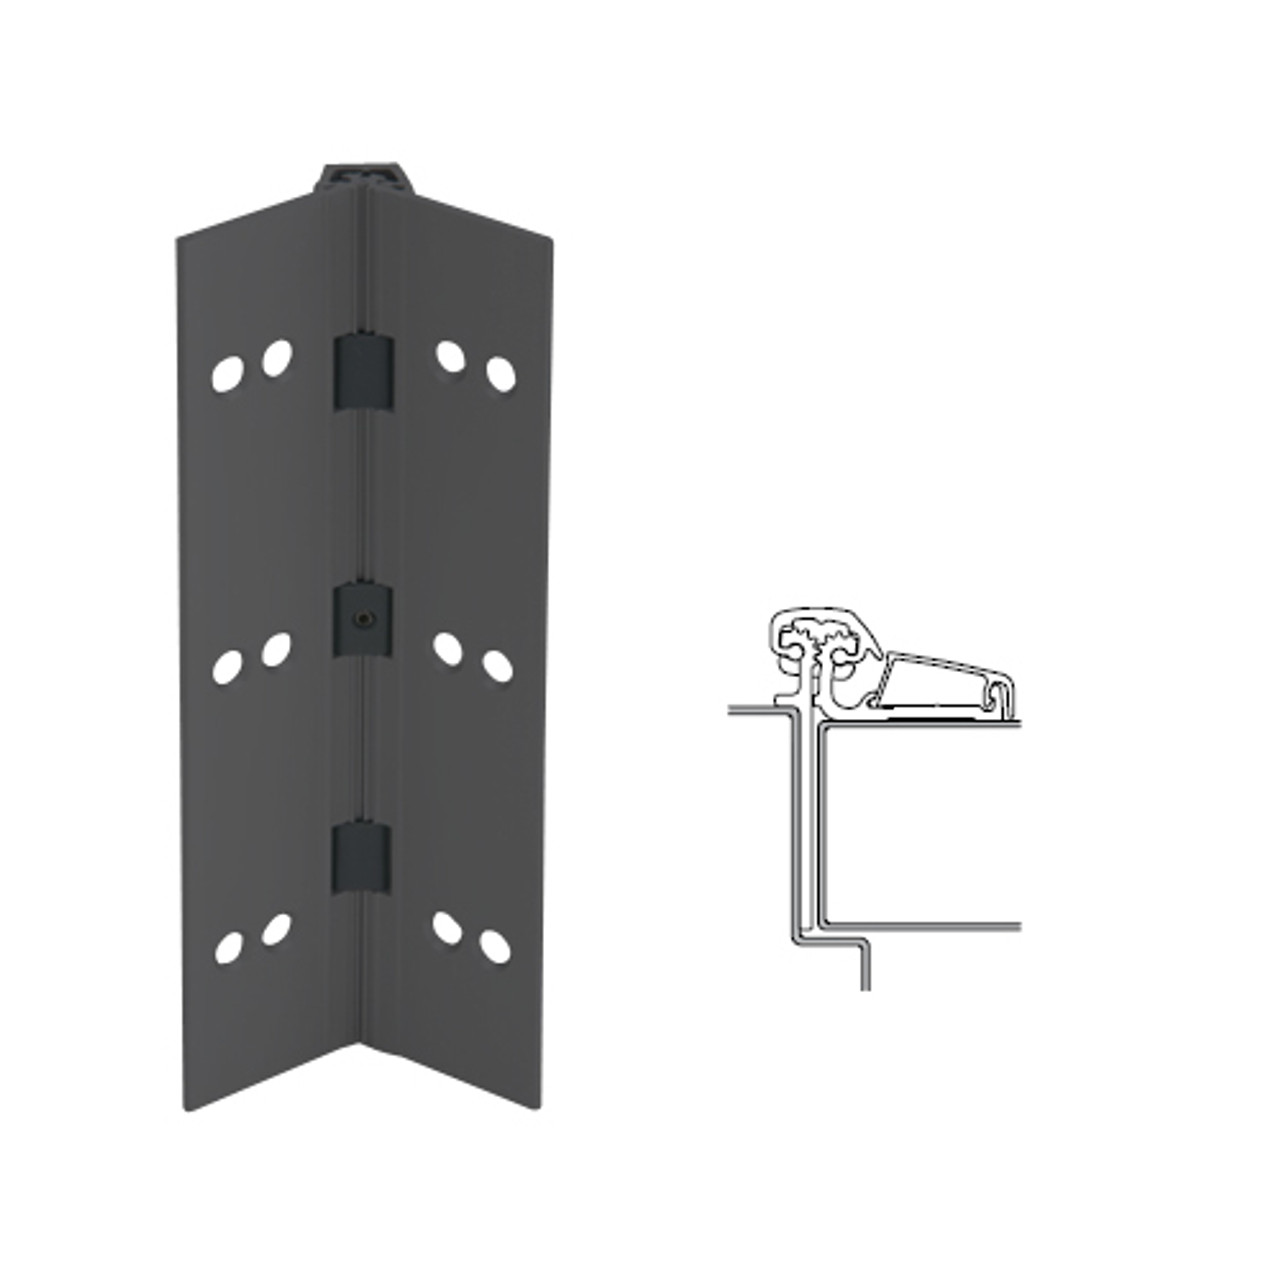 054XY-315AN-95-TF IVES Adjustable Half Surface Continuous Geared Hinges with Thread Forming Screws in Anodized Black